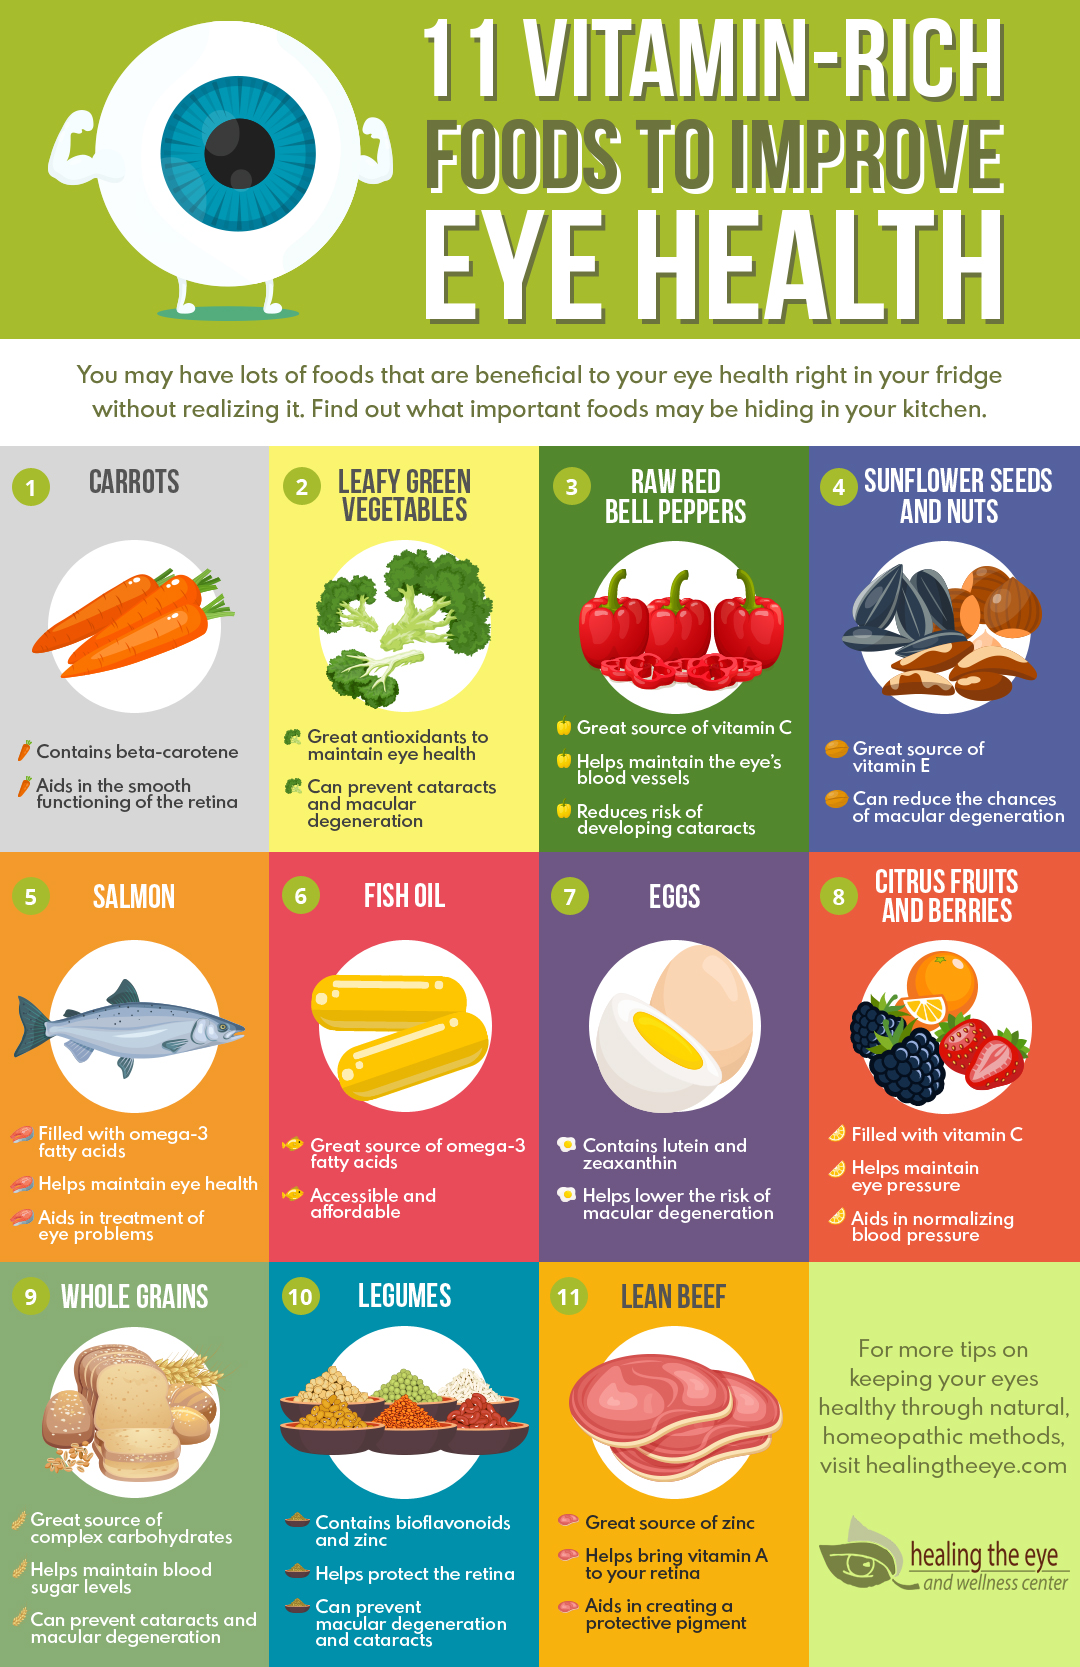 https://i1.wp.com/www.healingtheeye.com/wp-content/uploads/2018/02/20180320-Healing-The-Eye-11-Vitamin-Rich-Foods-To-Improve-Eye-Health.jpg?w=1080&ssl=1